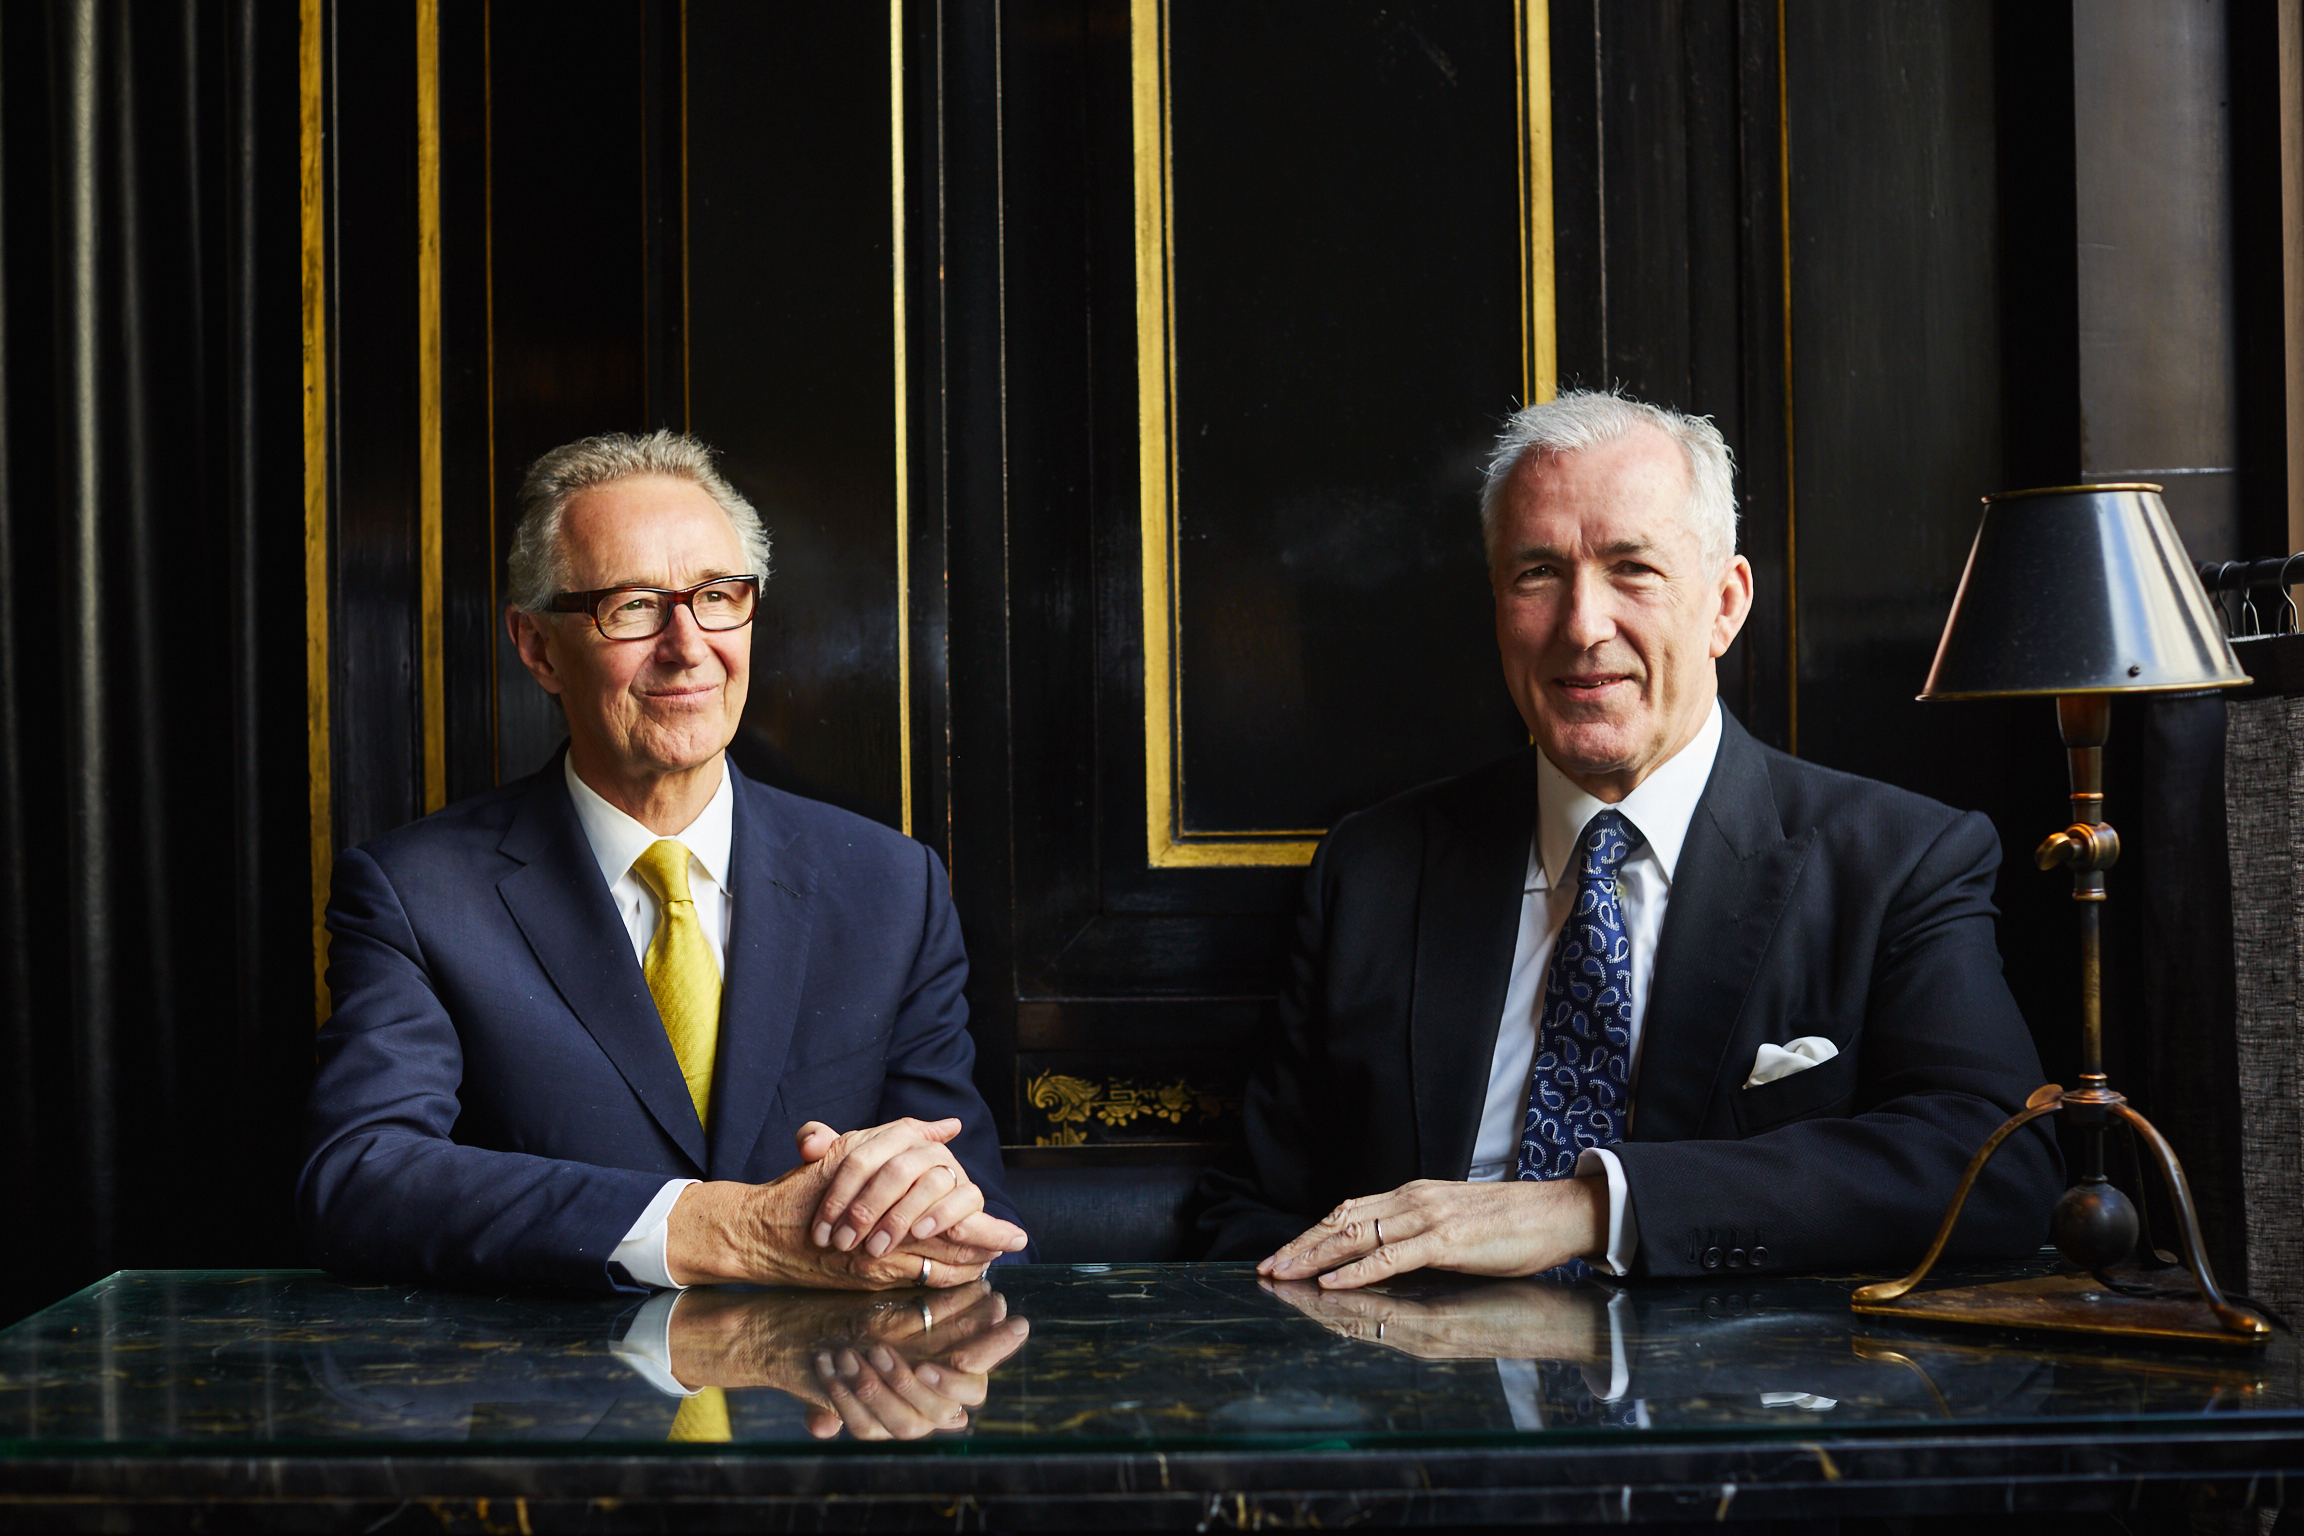 Chris Corbin and Jeremy King, Corbin and King, owners of the Wolseley, Delaunay, Brasserie Zedel, and more